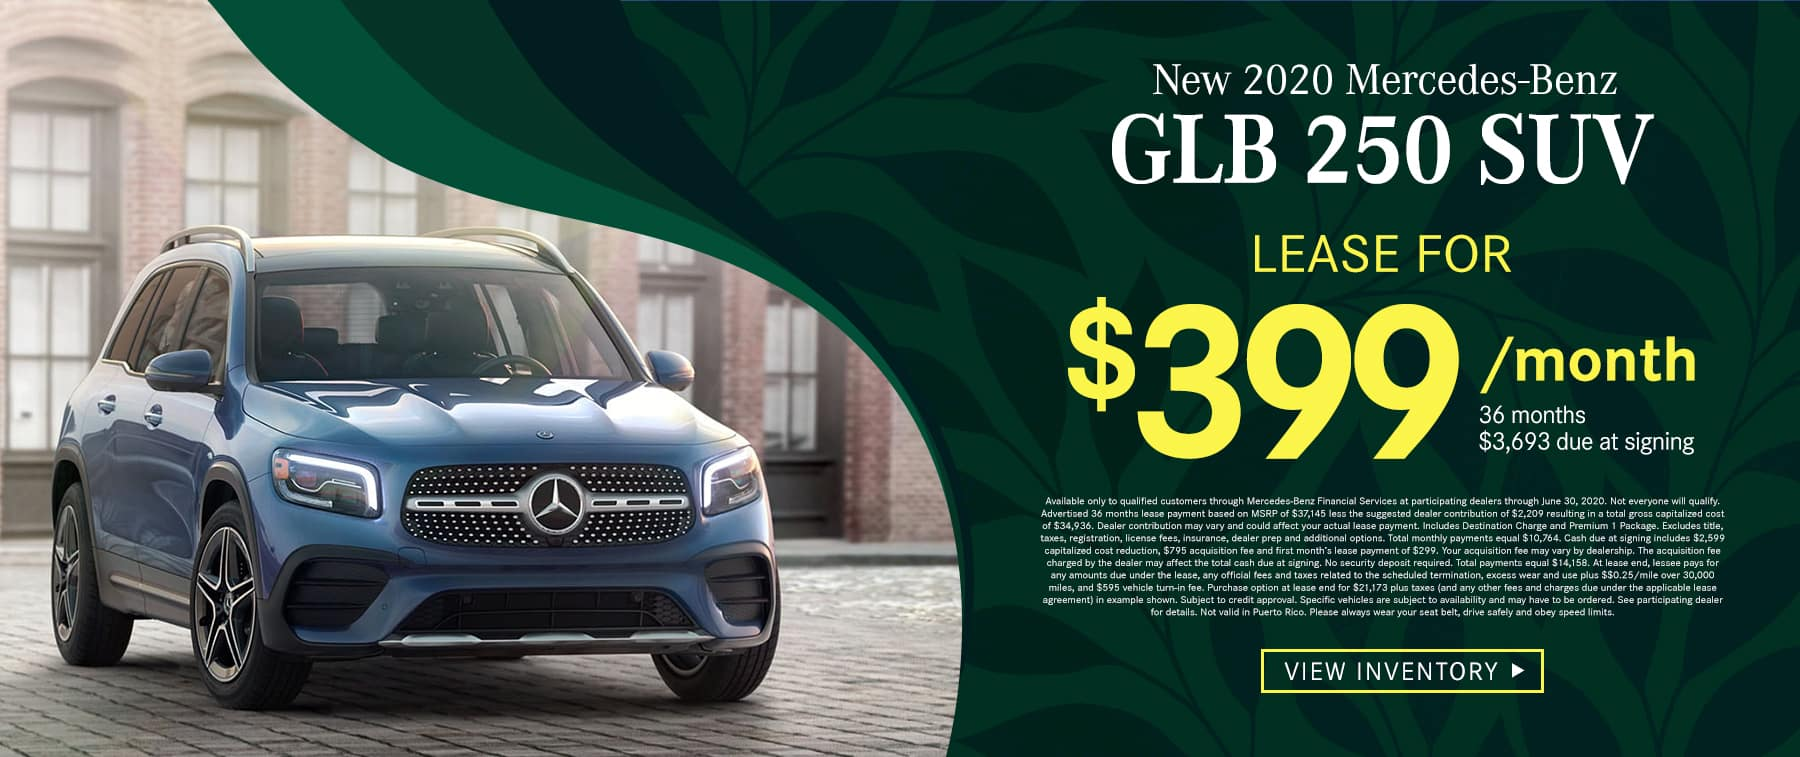 2020 GLB 250 SUV $399 Per Month 36 Months/10k Miles $3693 Due at signing